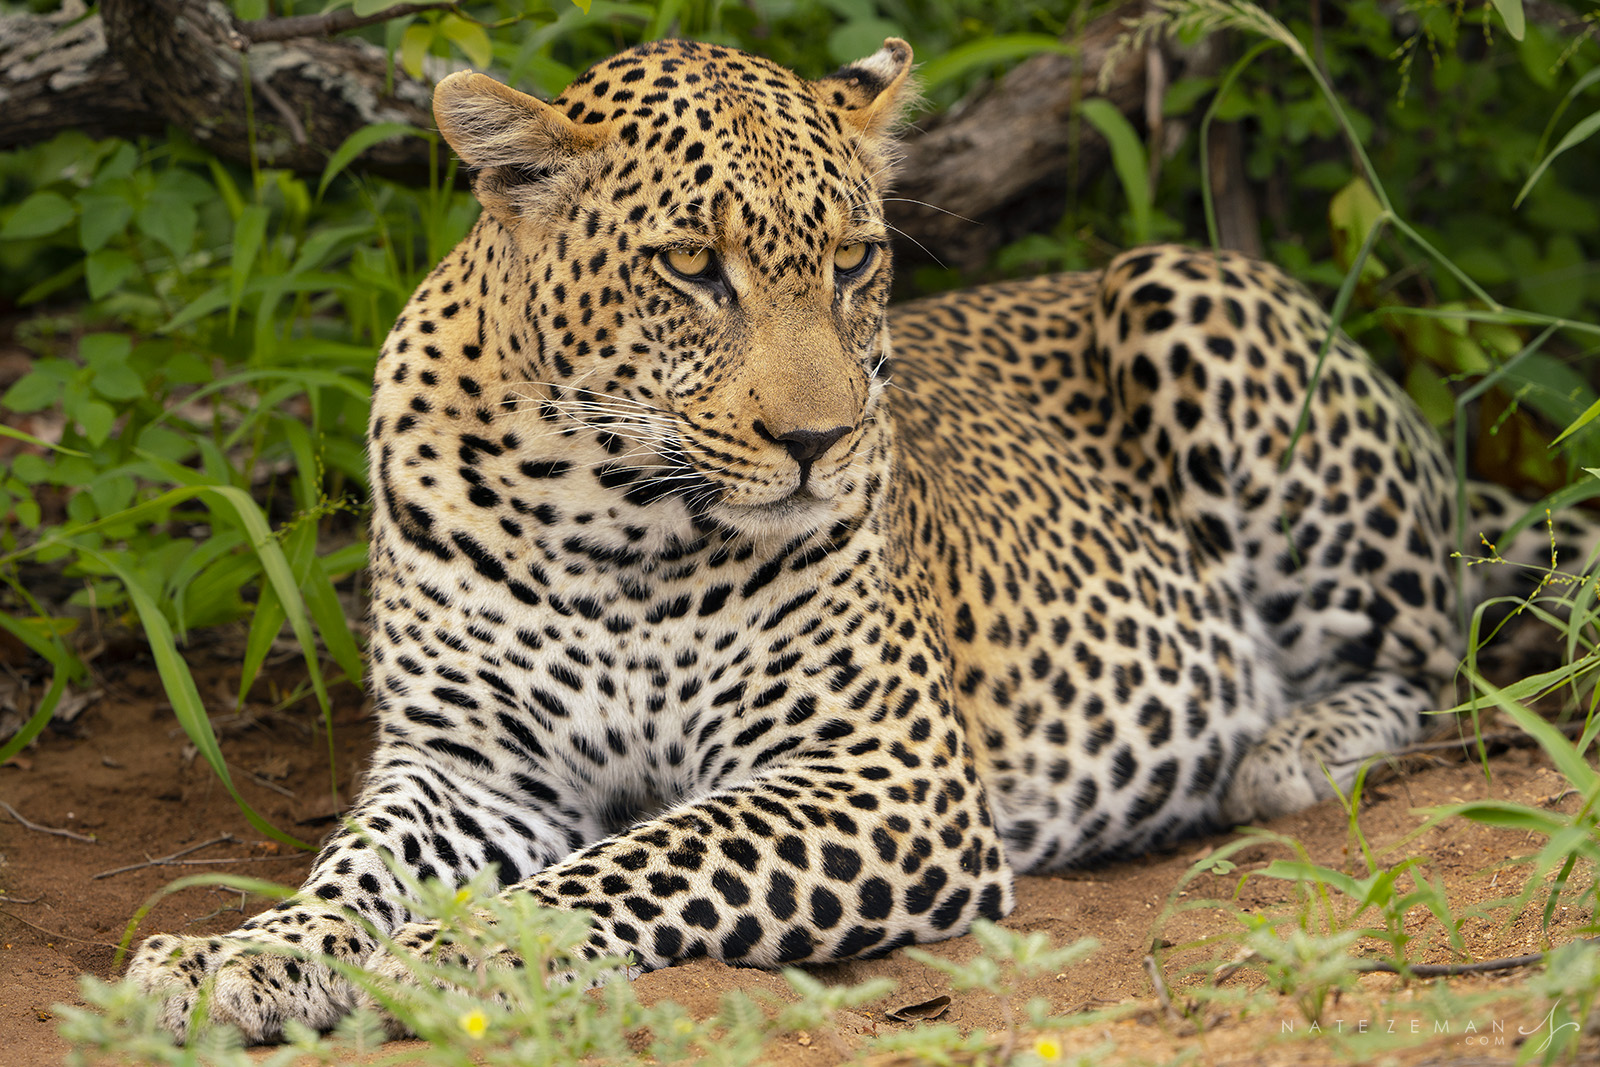 In the shadow of a small treea beautiful male leopard seeks respite from the blisteringheat of the midday sun. While...